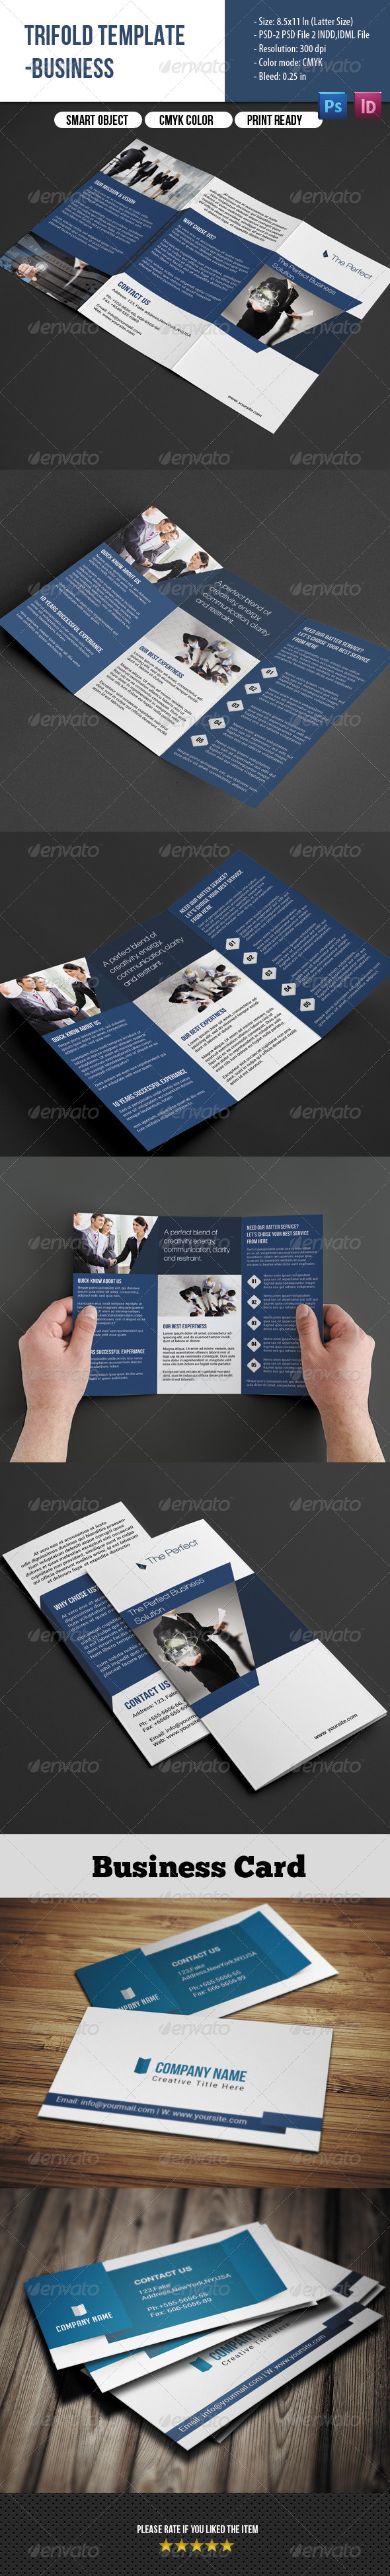 GraphicRiver Business Trifold&Business Card 7782487